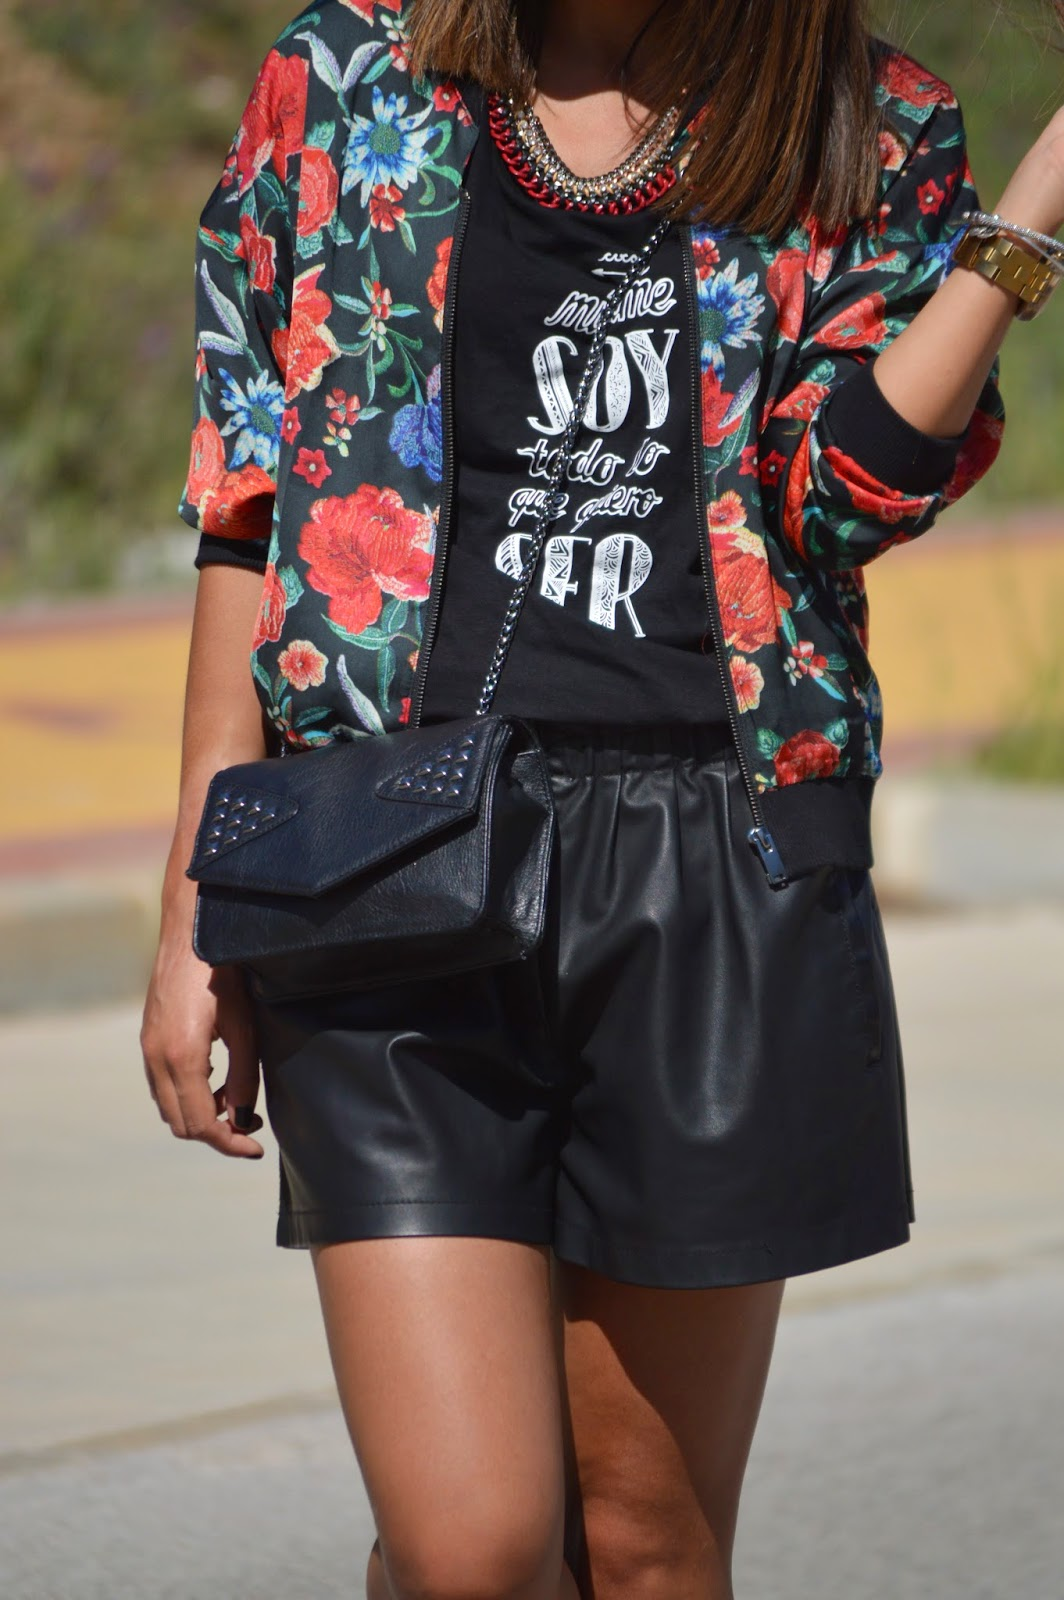 street style style fashion ootd cristina style fashion blogger malagueña blogger malagueña bomber zara mango spring outfit look chic casual lovely gorgeous moda mood trend